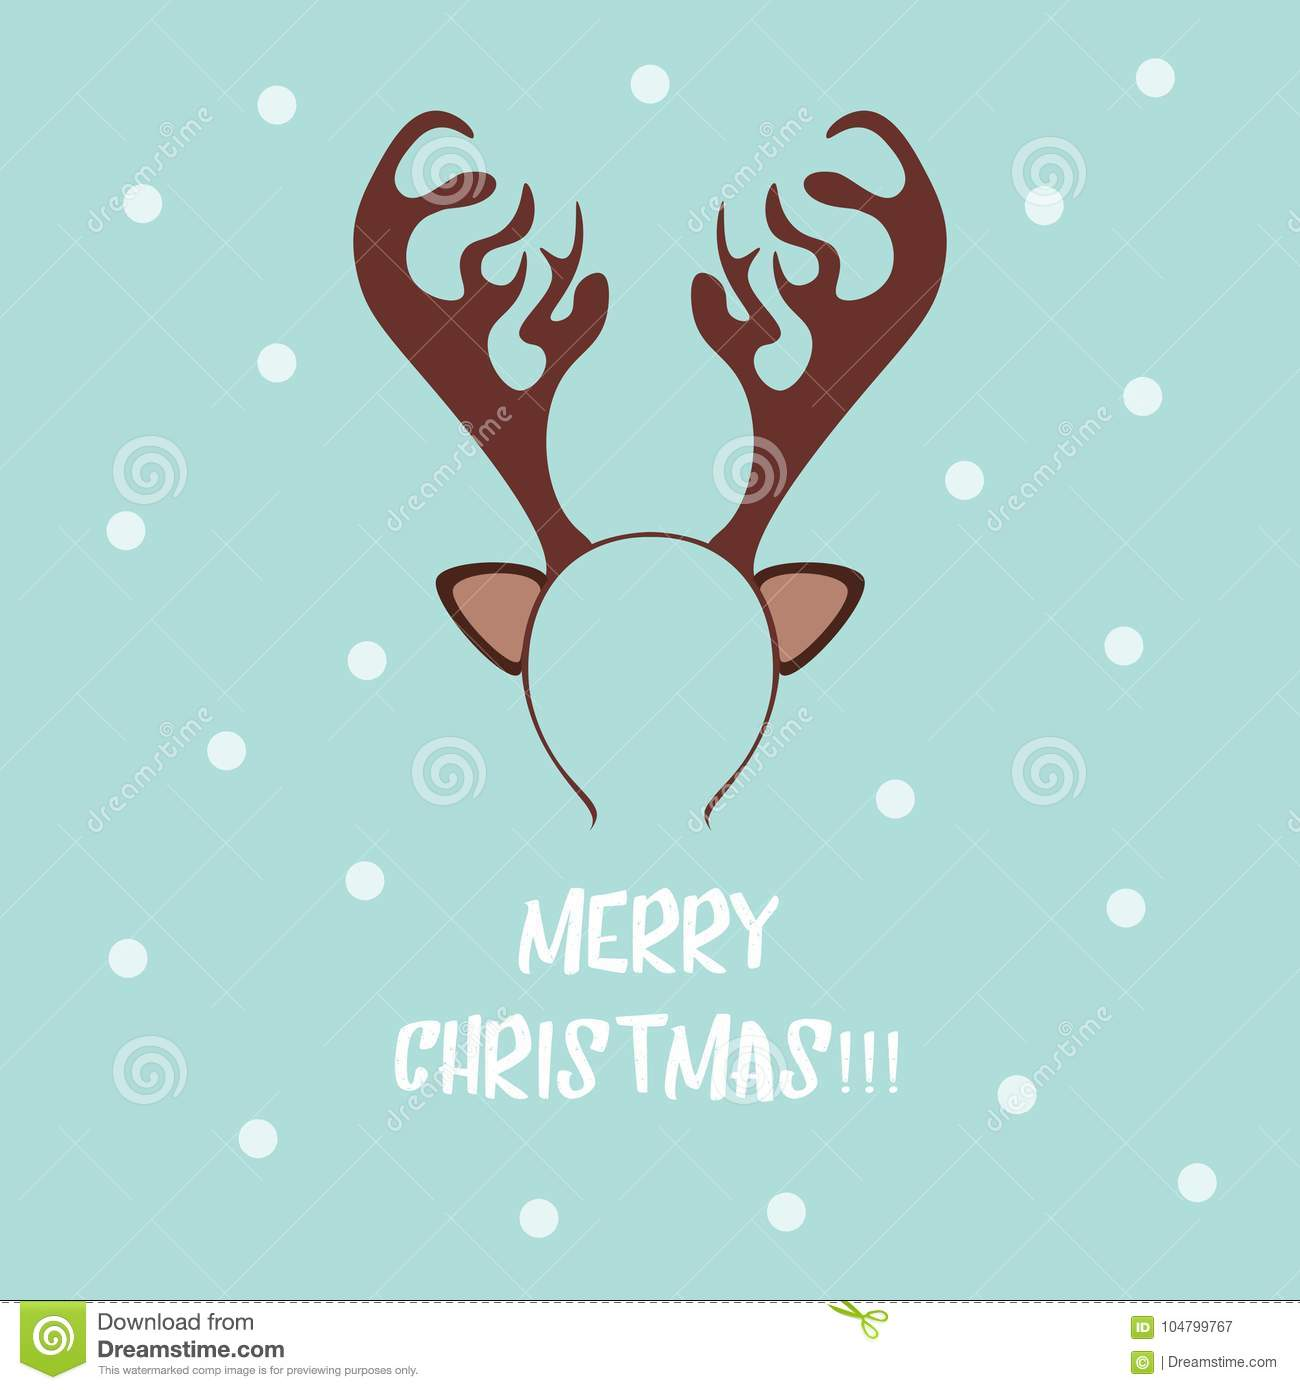 funny christmas tiara templates for picture reindeer antlers stock